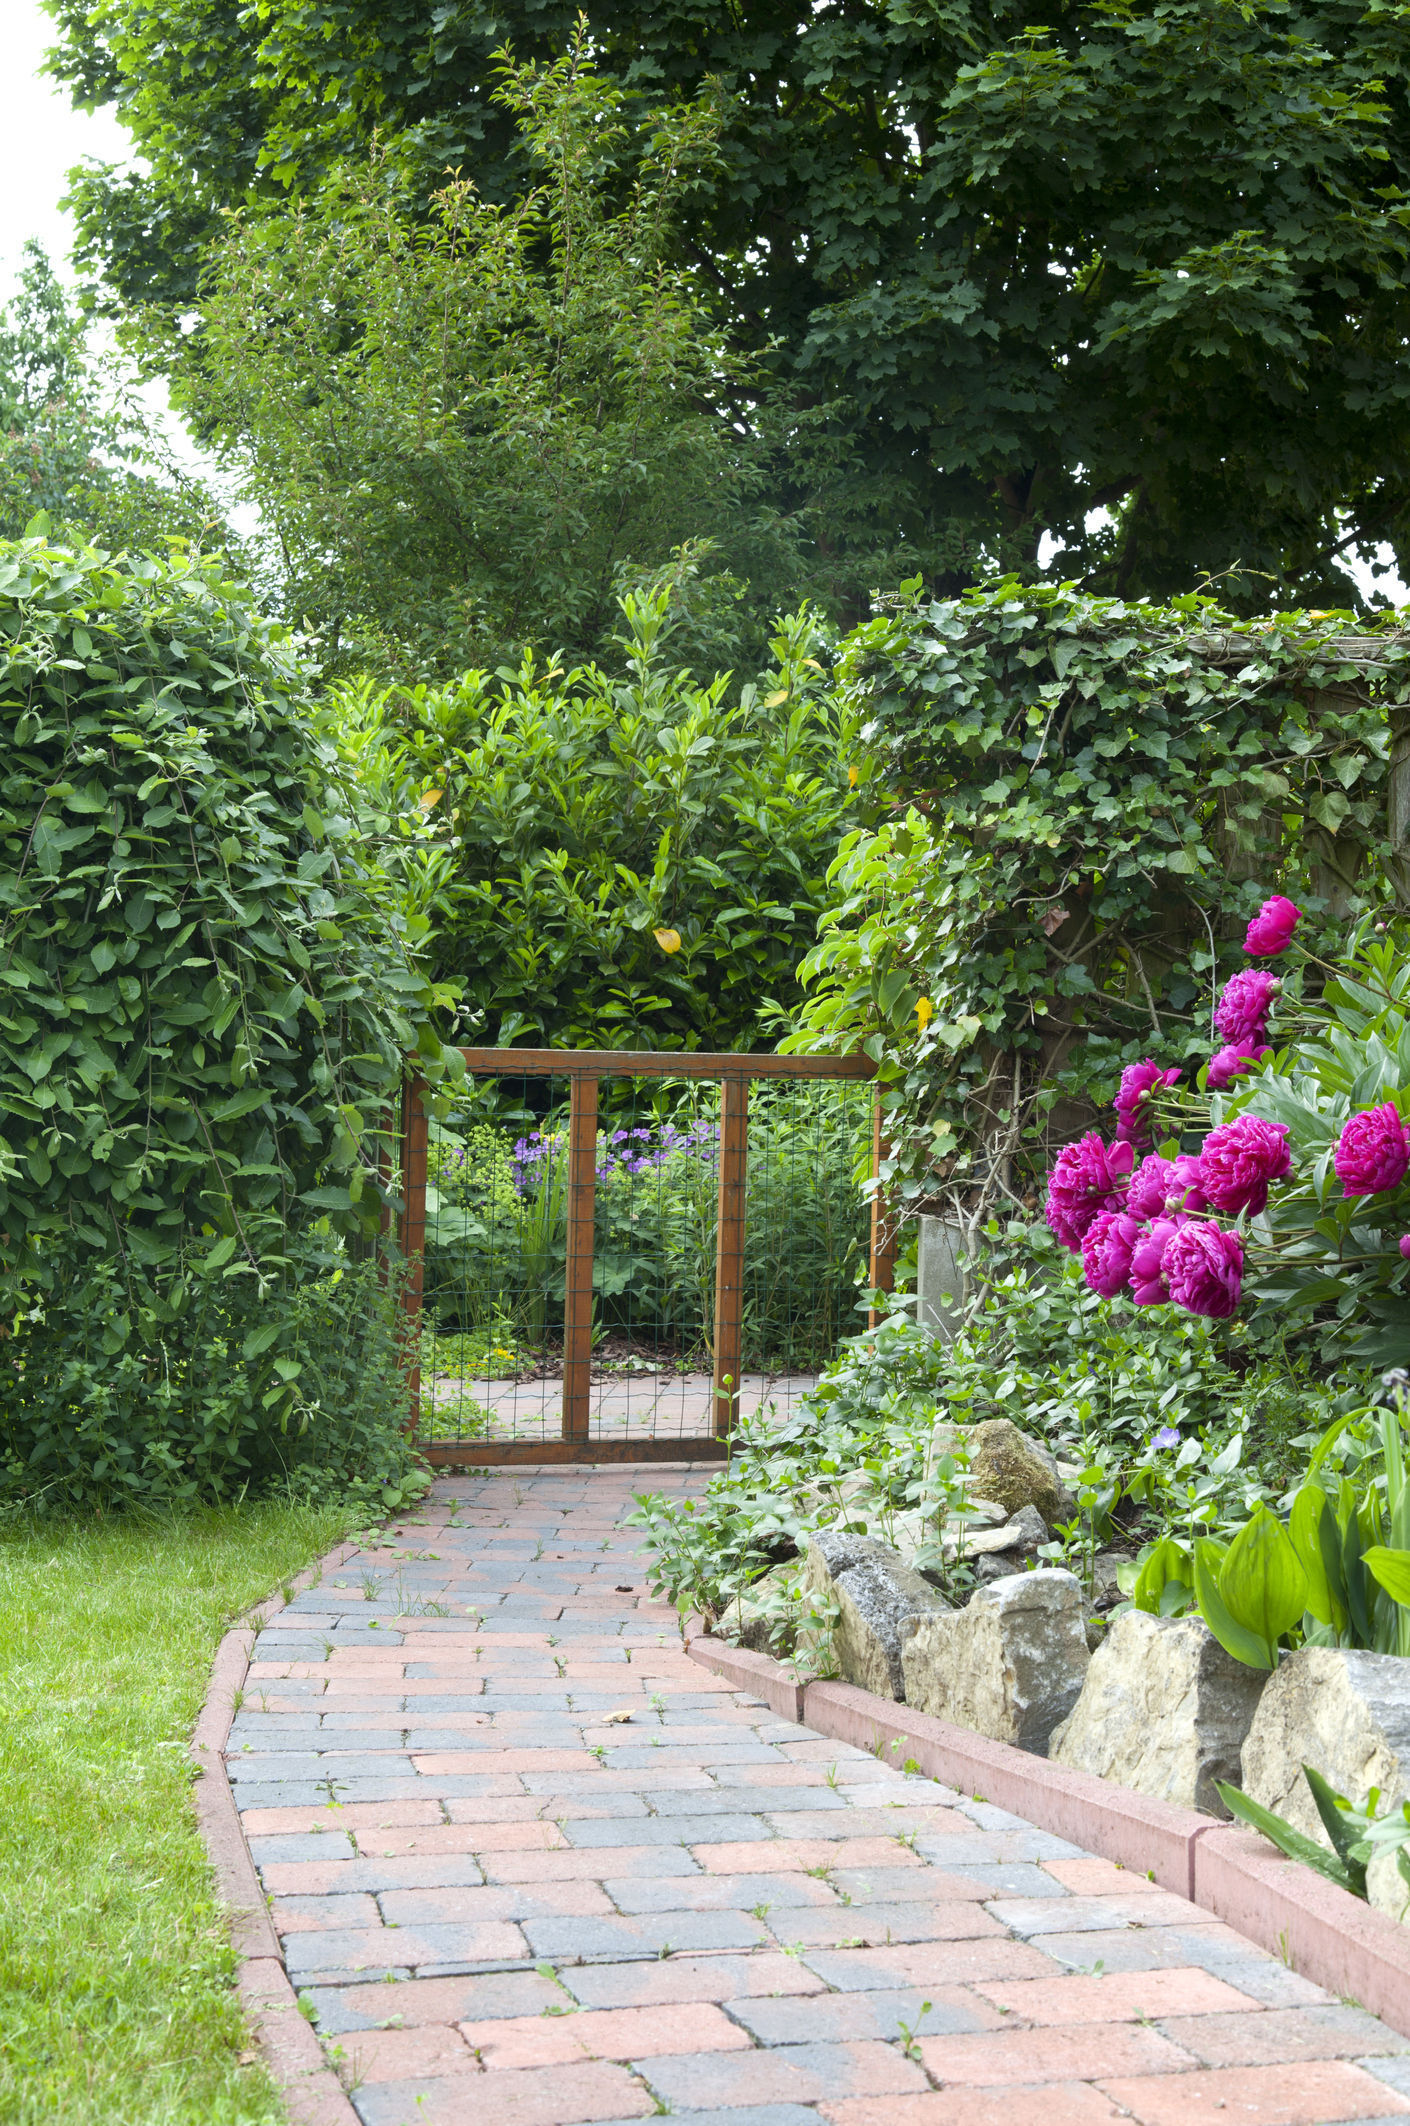 Is your garden path a step in the right direction?